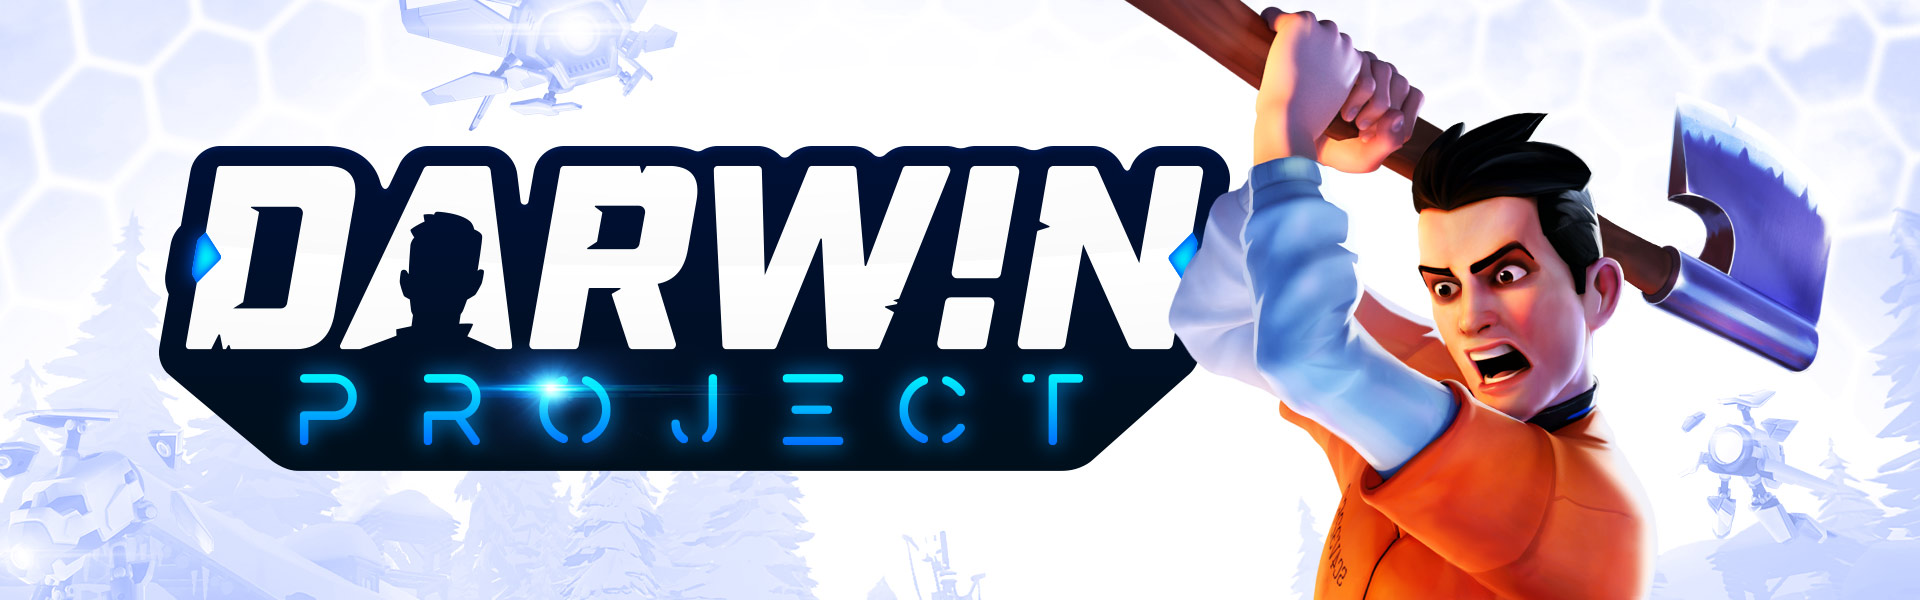 Darwin Project, man holds an axe over his head while a small flying robot looks at him